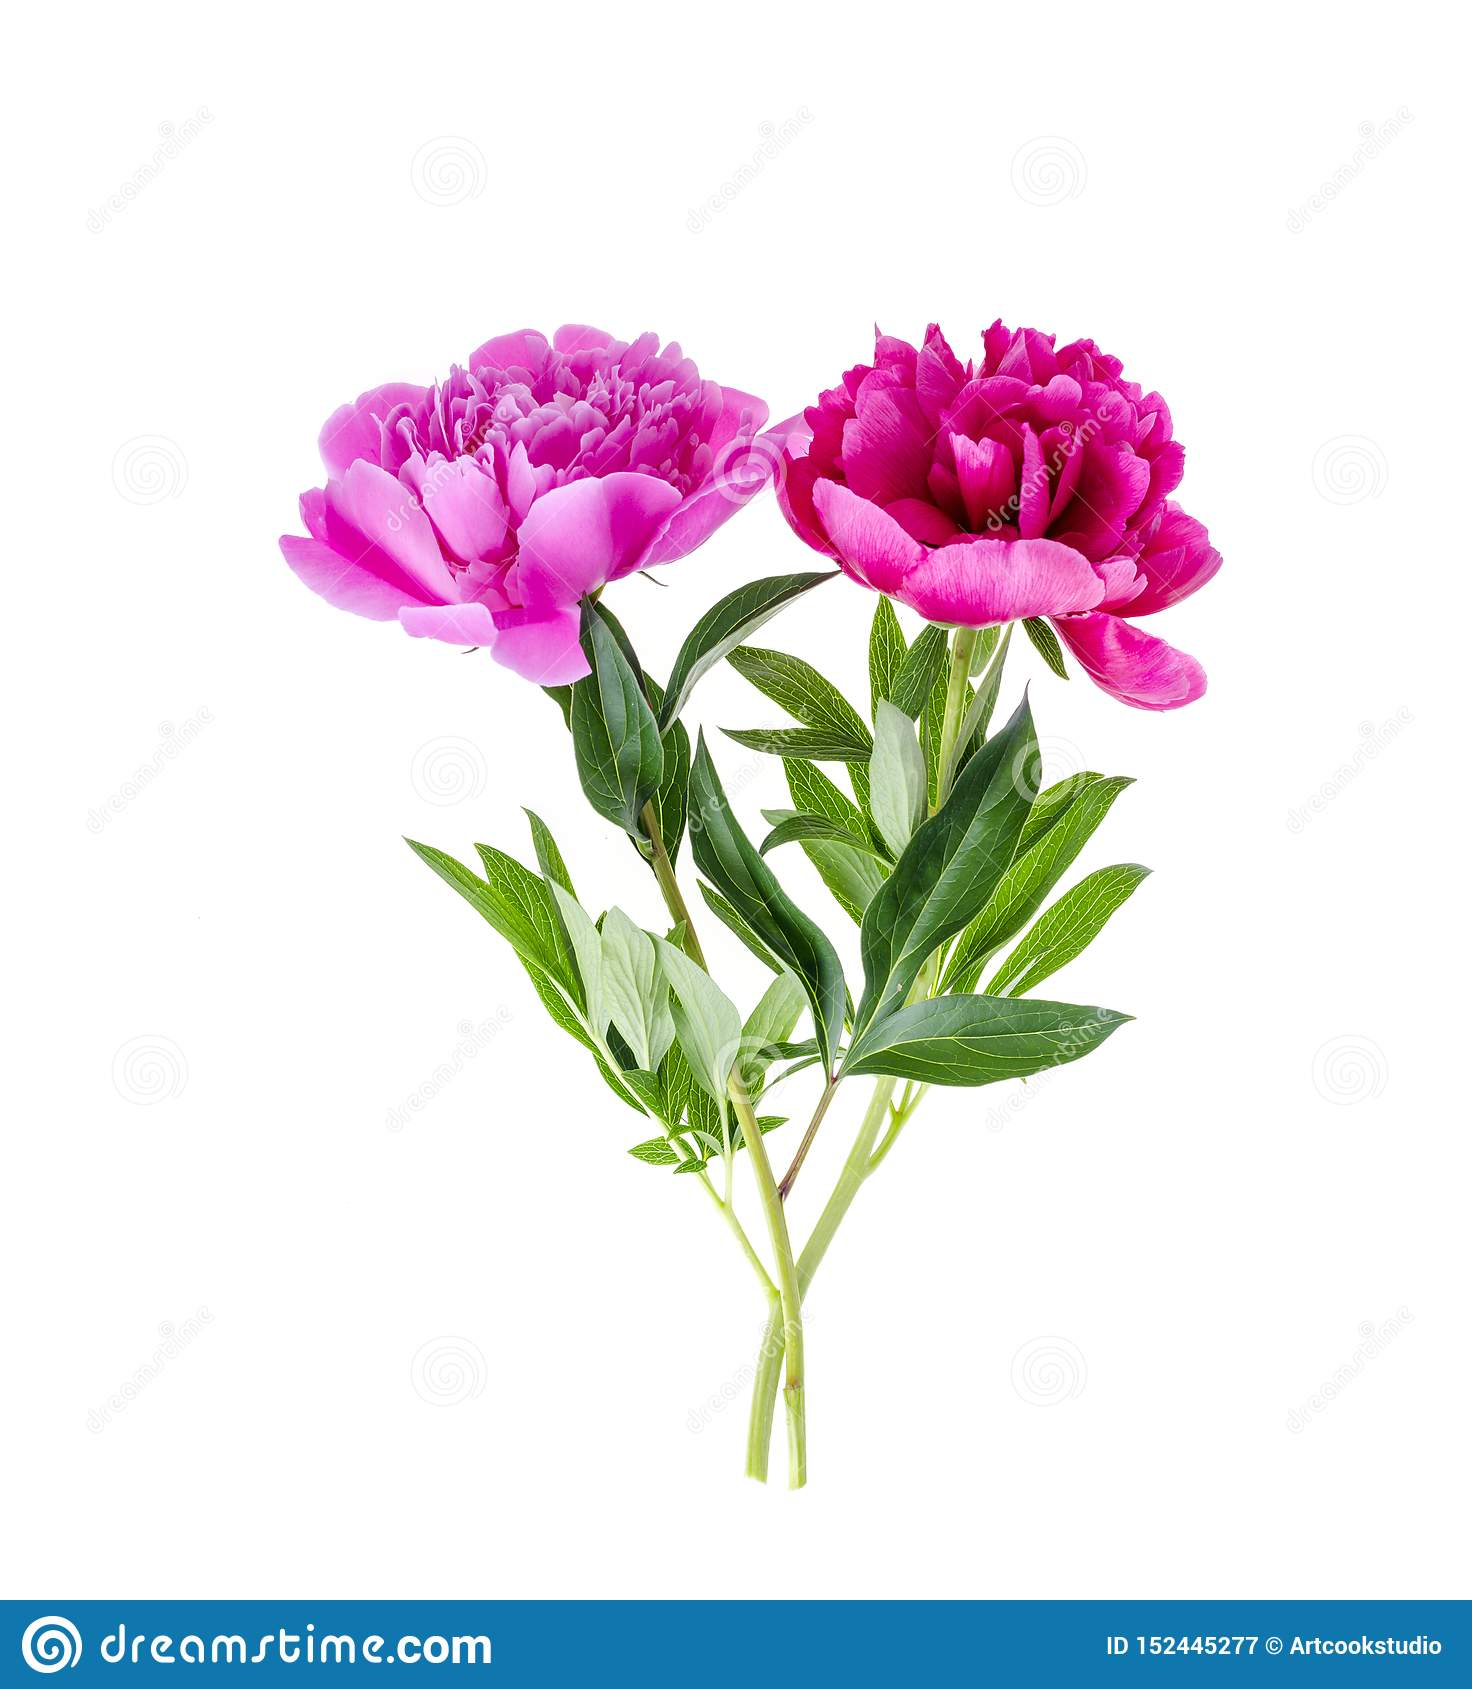 Beautiful pink peony flower isolated on white background.